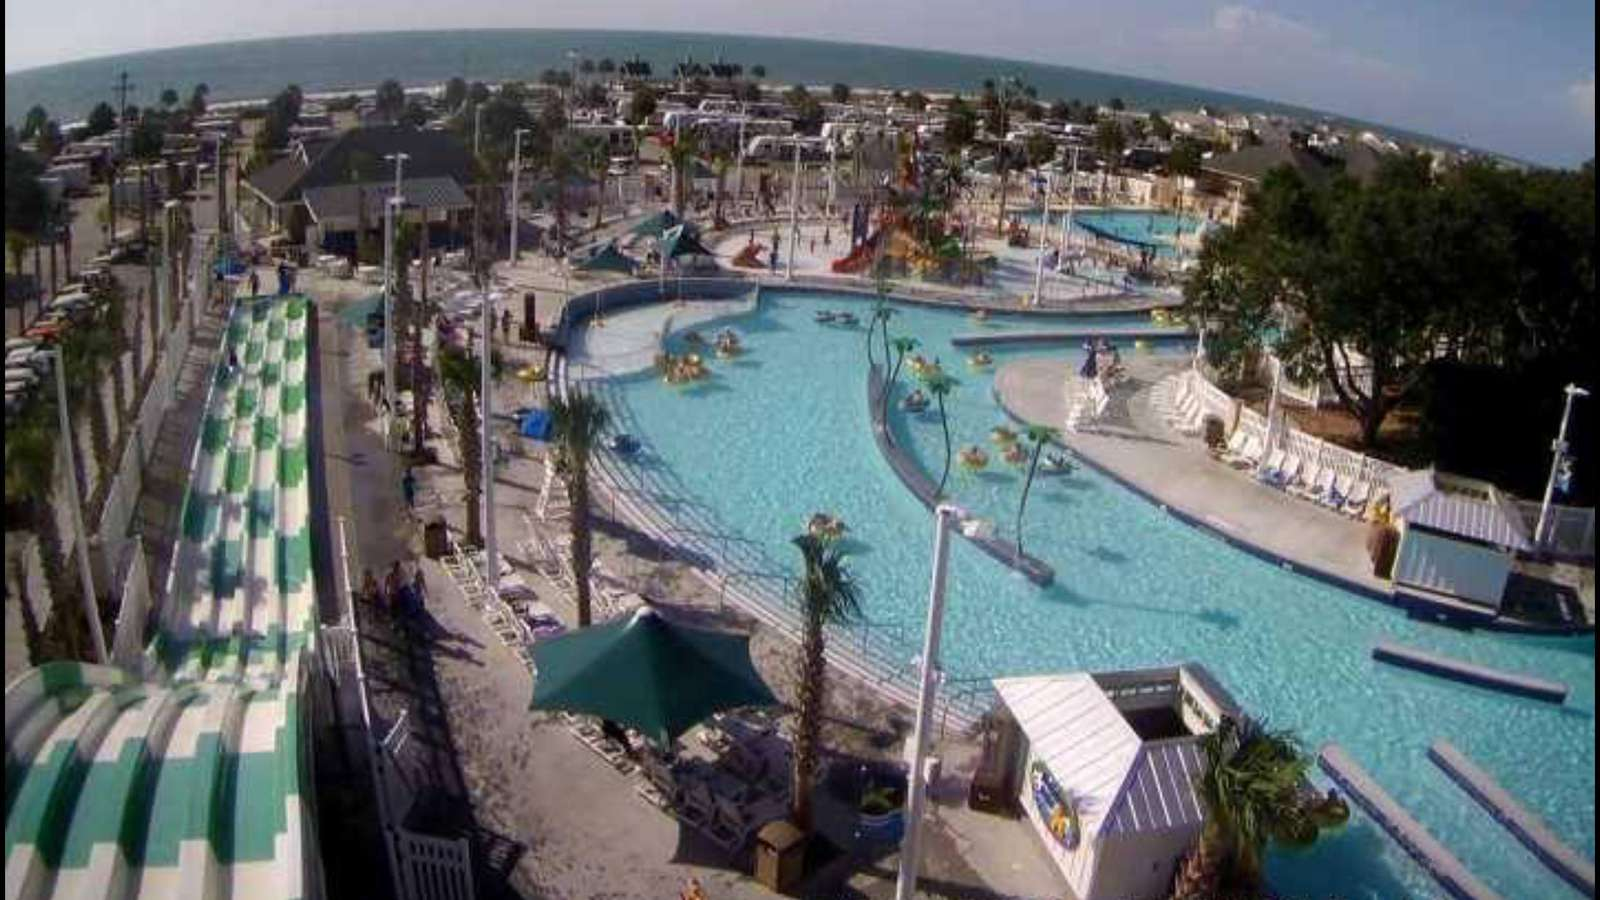 View of the water park